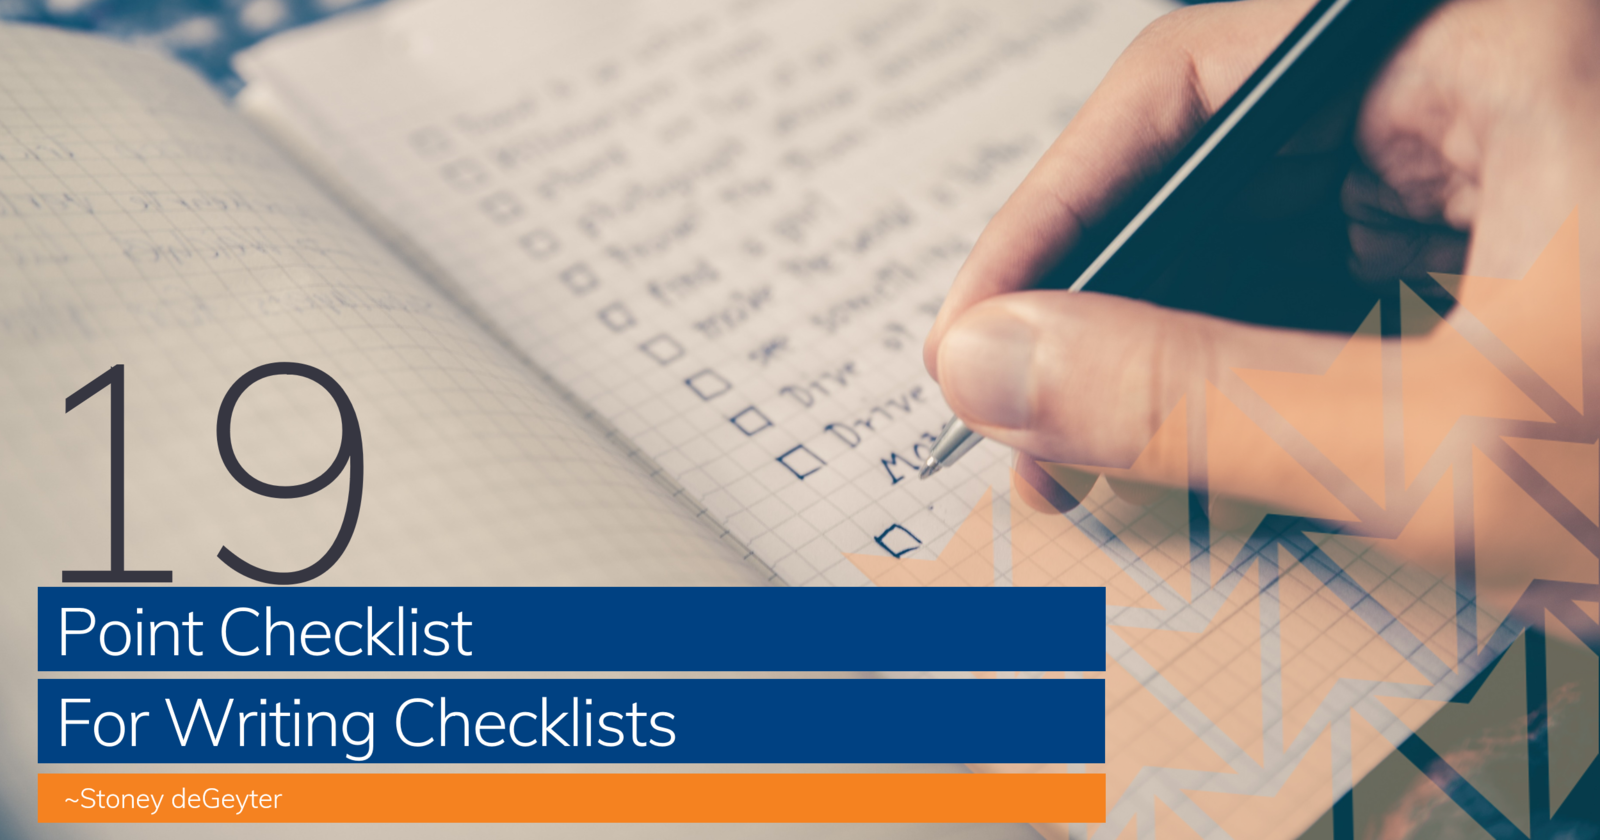 A Checklist For Checklists the complete 19-point checklist for writing checklists